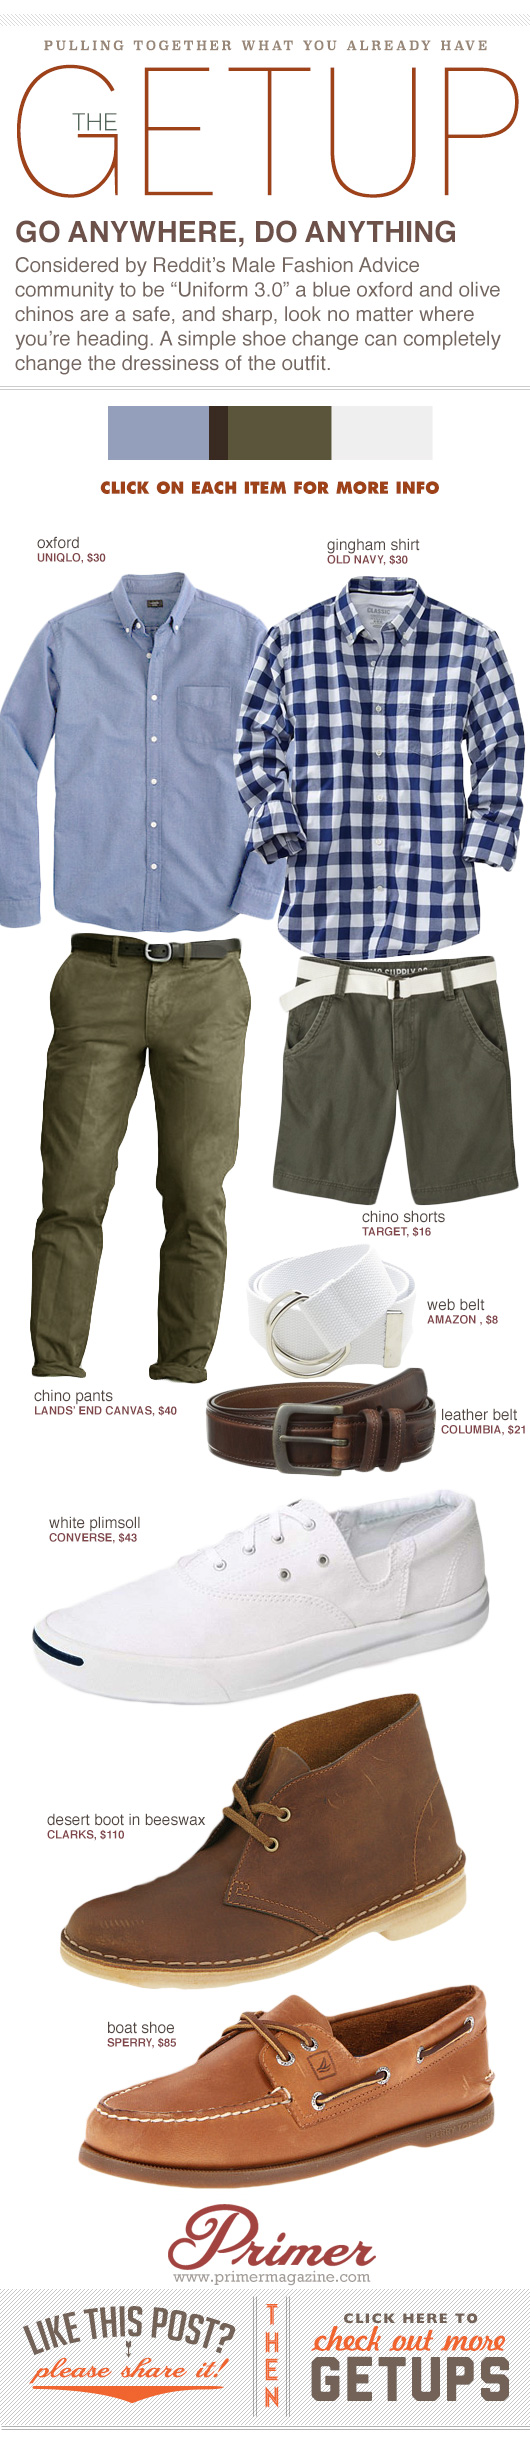 Getup - Go Anywhere, Do Anything - blue shirt, green pants or shorts, with three footwear options